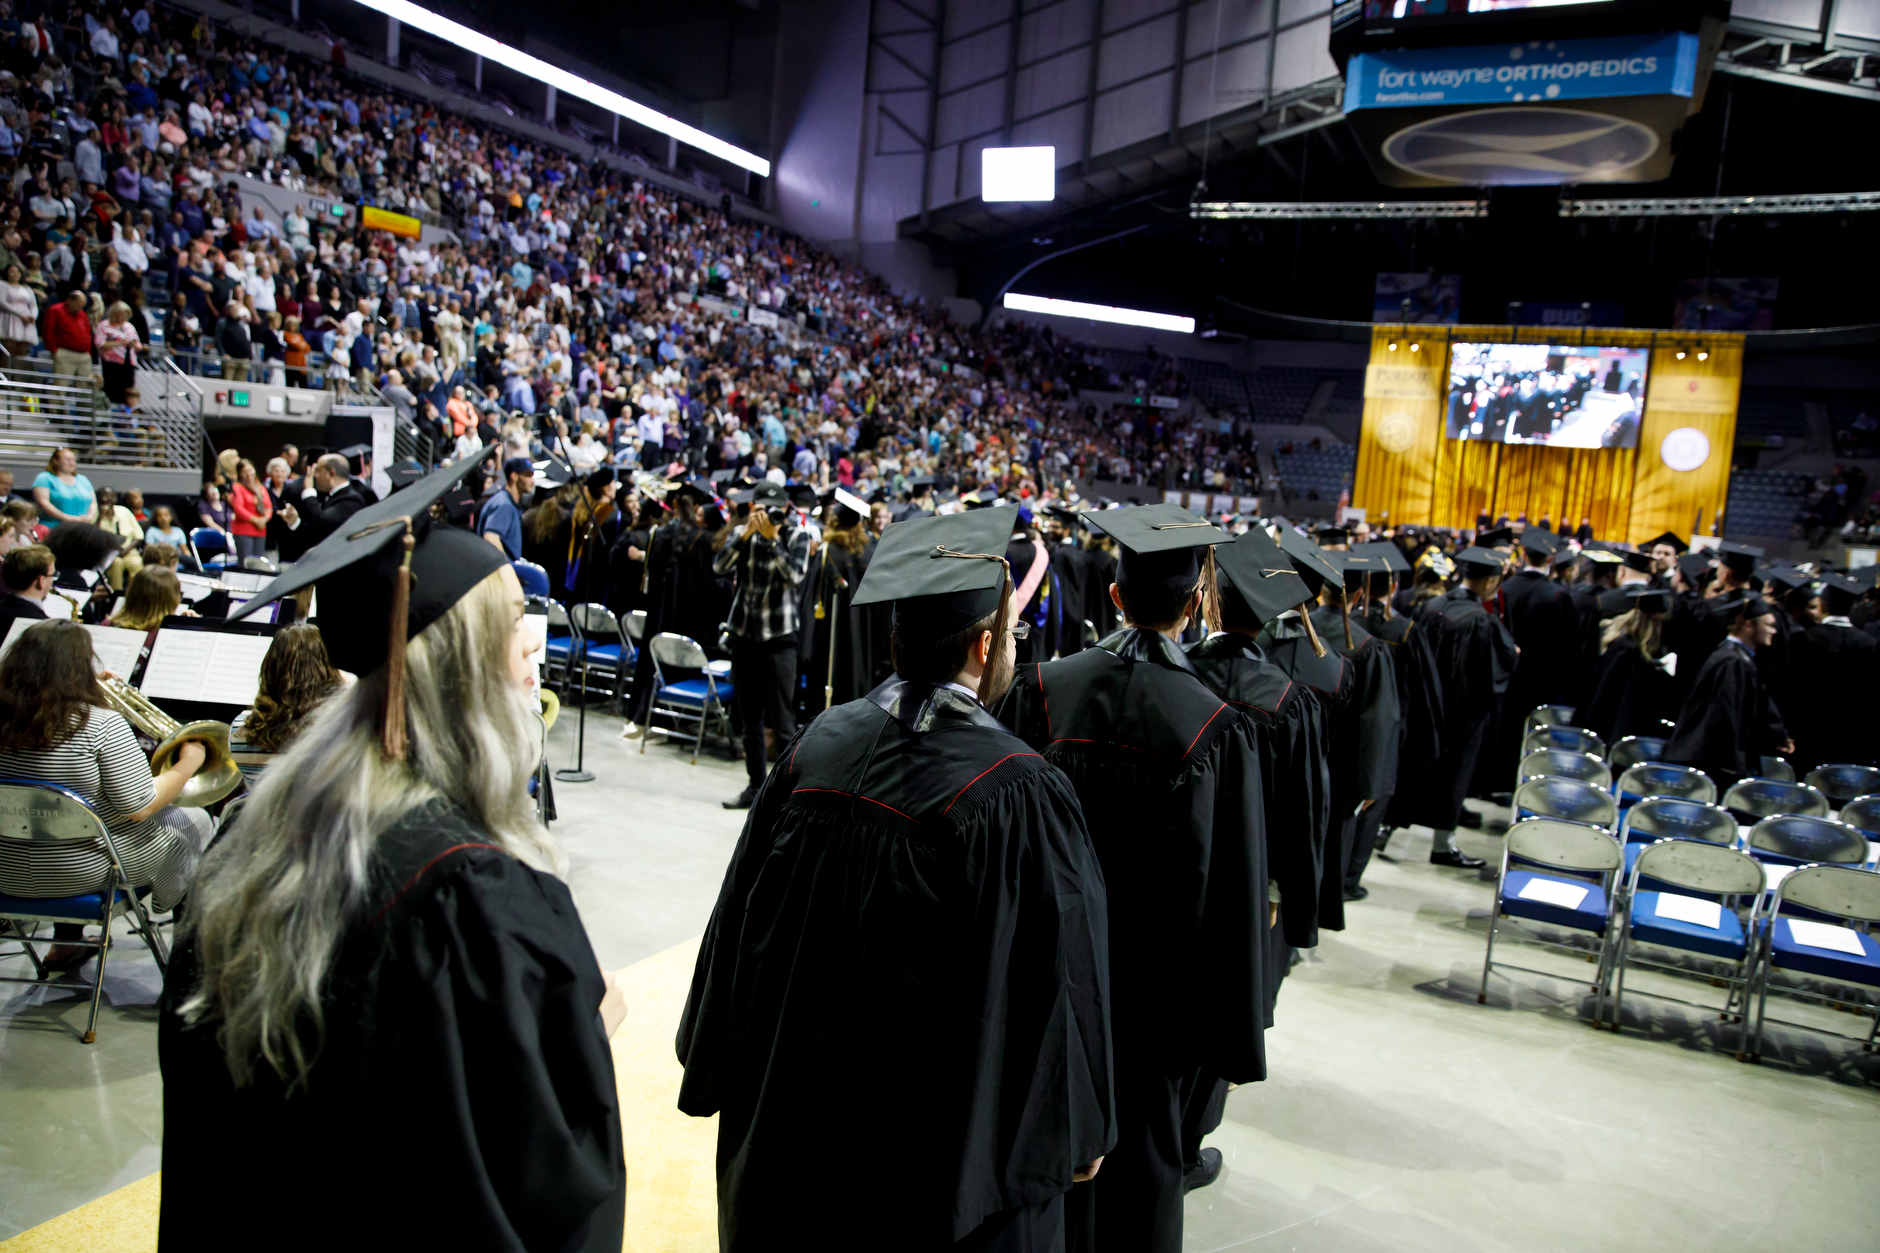 Graduates walk in the processional during the Purdue Fort Wayne and IU Fort Wayne Commencement at the Allen County War Memorial Coliseum on Wednesday, May 8, 2019. (James Brosher/Indiana University)